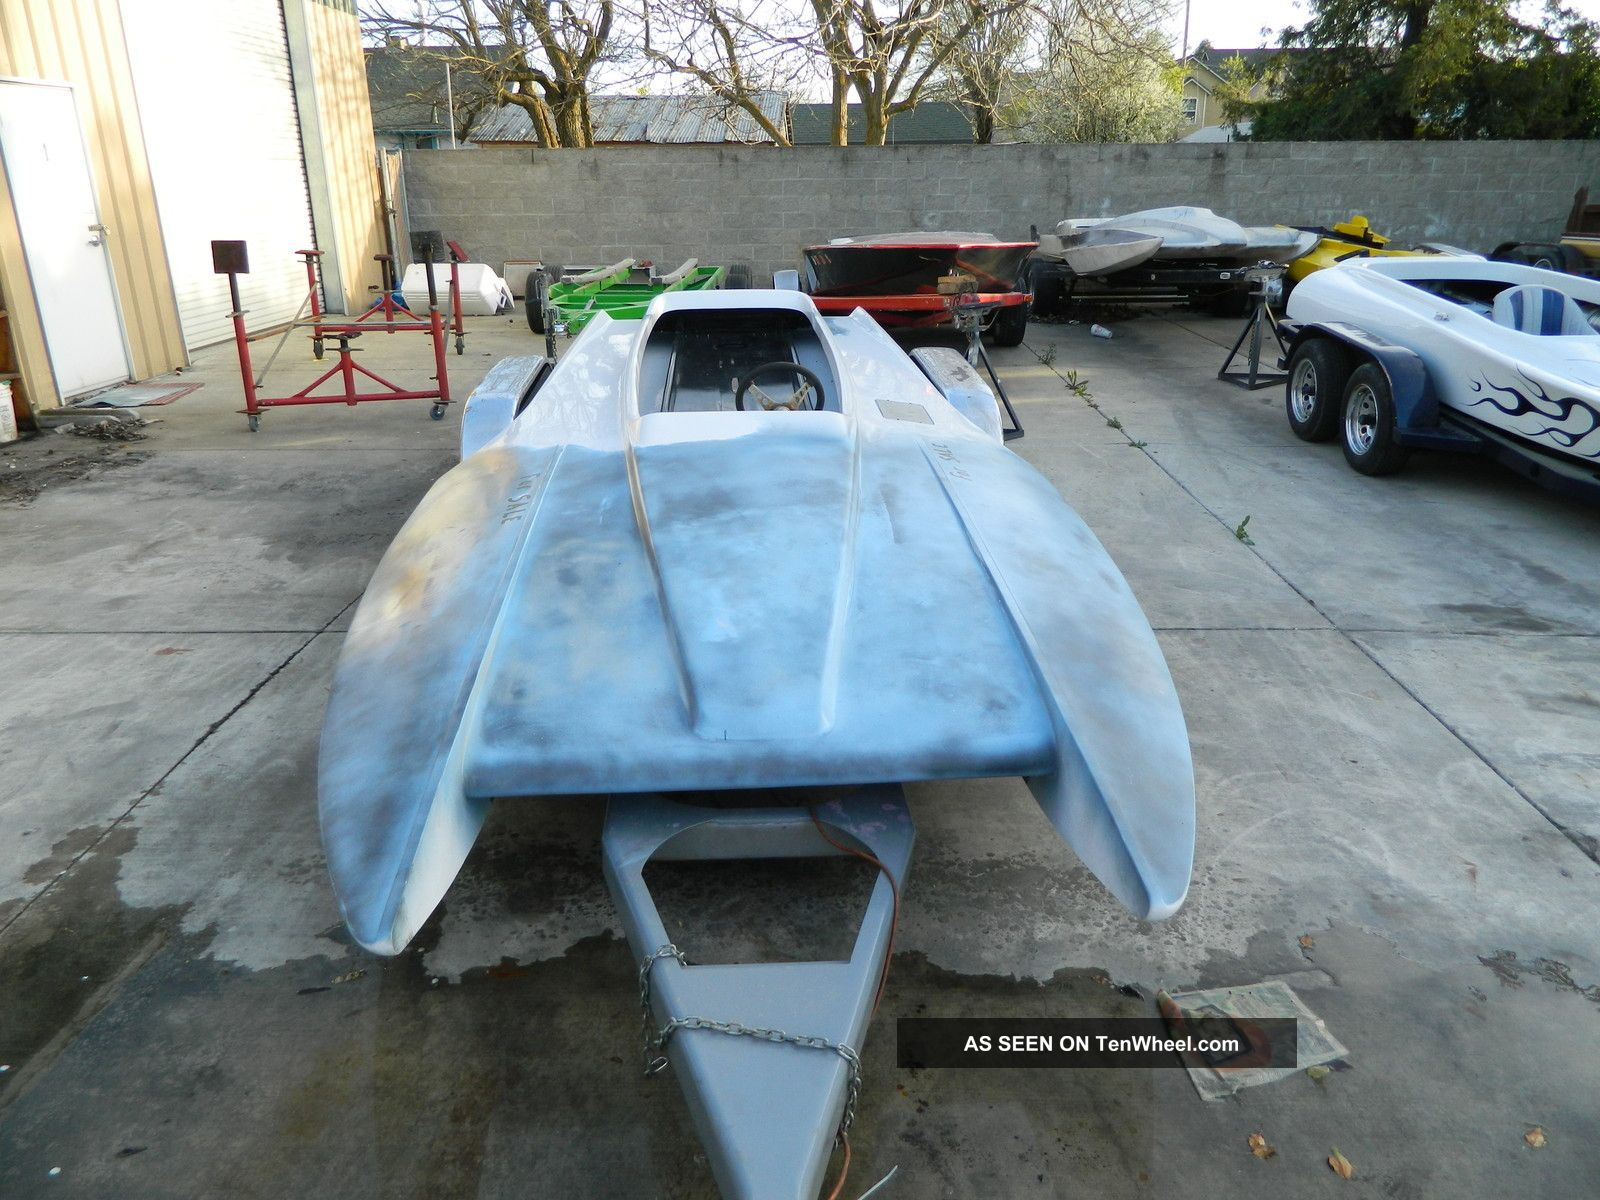 1978 Brendel / Hondo Blown Fuel Hydro (old Smoke On The Water Boat) Other Powerboats photo